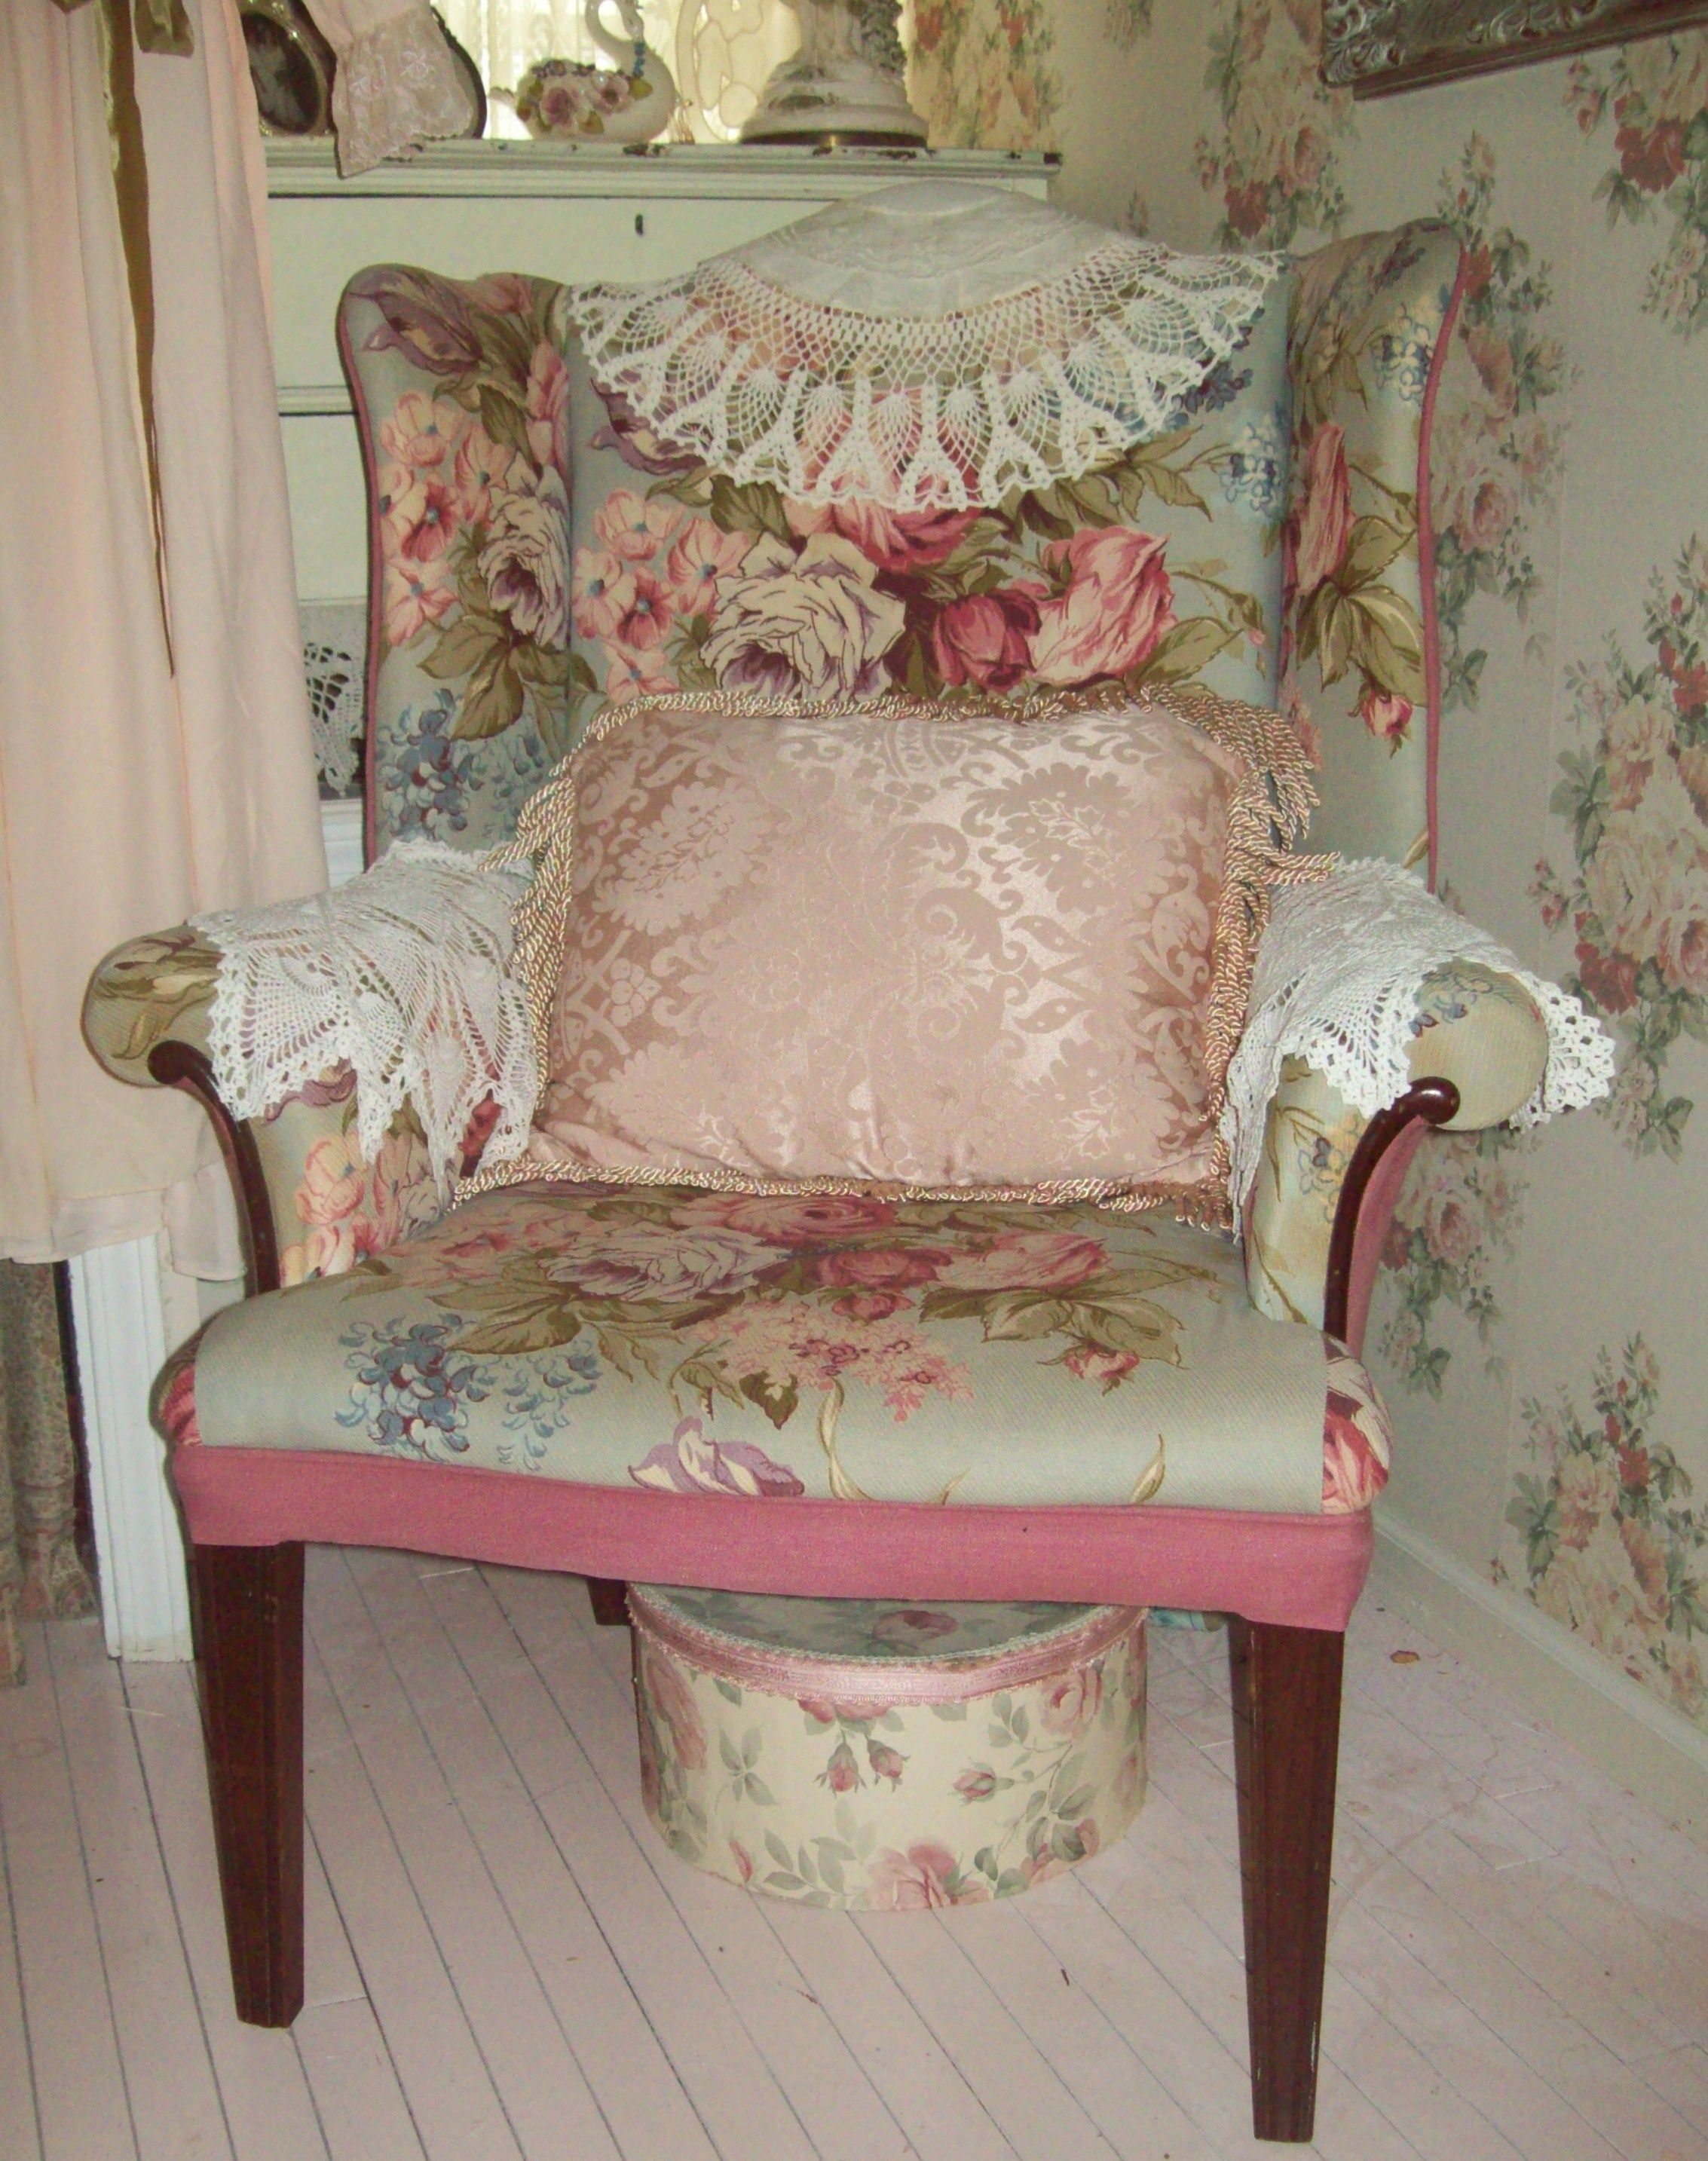 cute cottage chair...thrift shop find...hurray